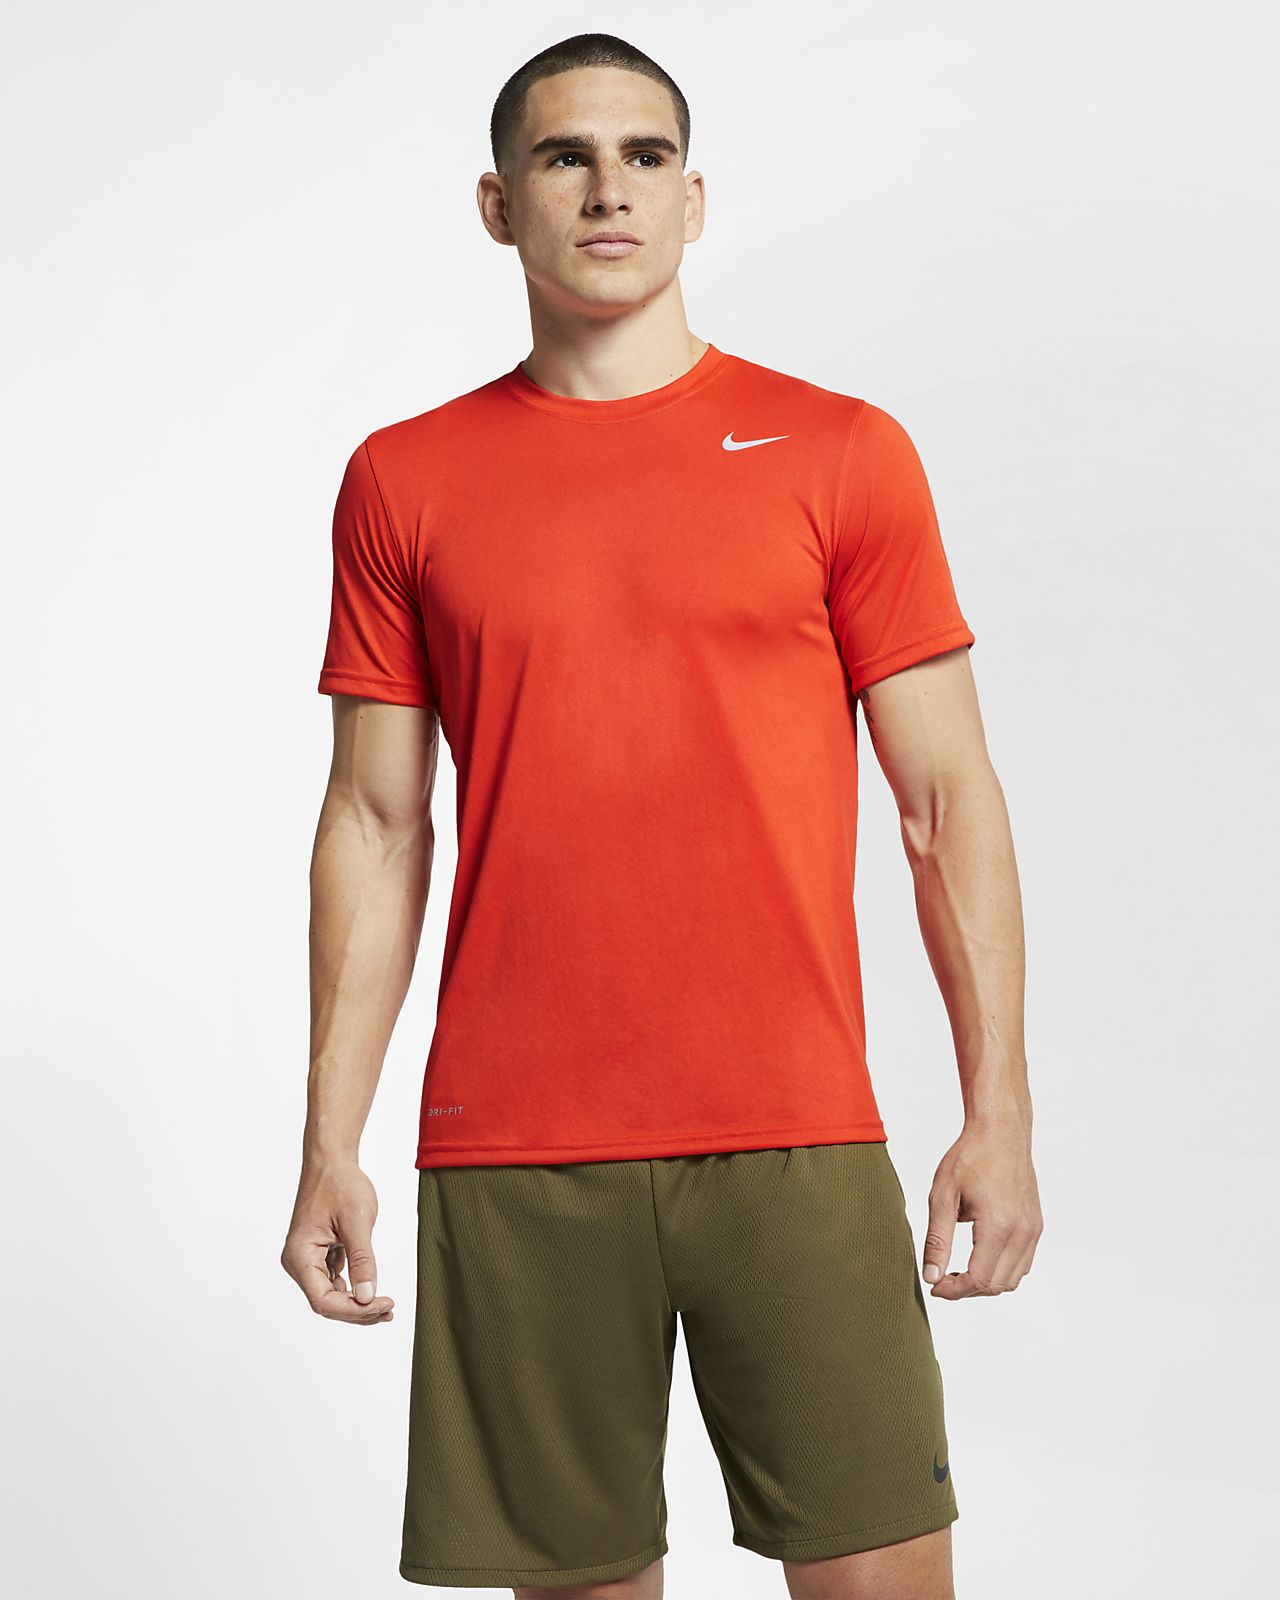 069265f2 Nike Legend 2.0 Men's Training T-Shirt. Nike.com